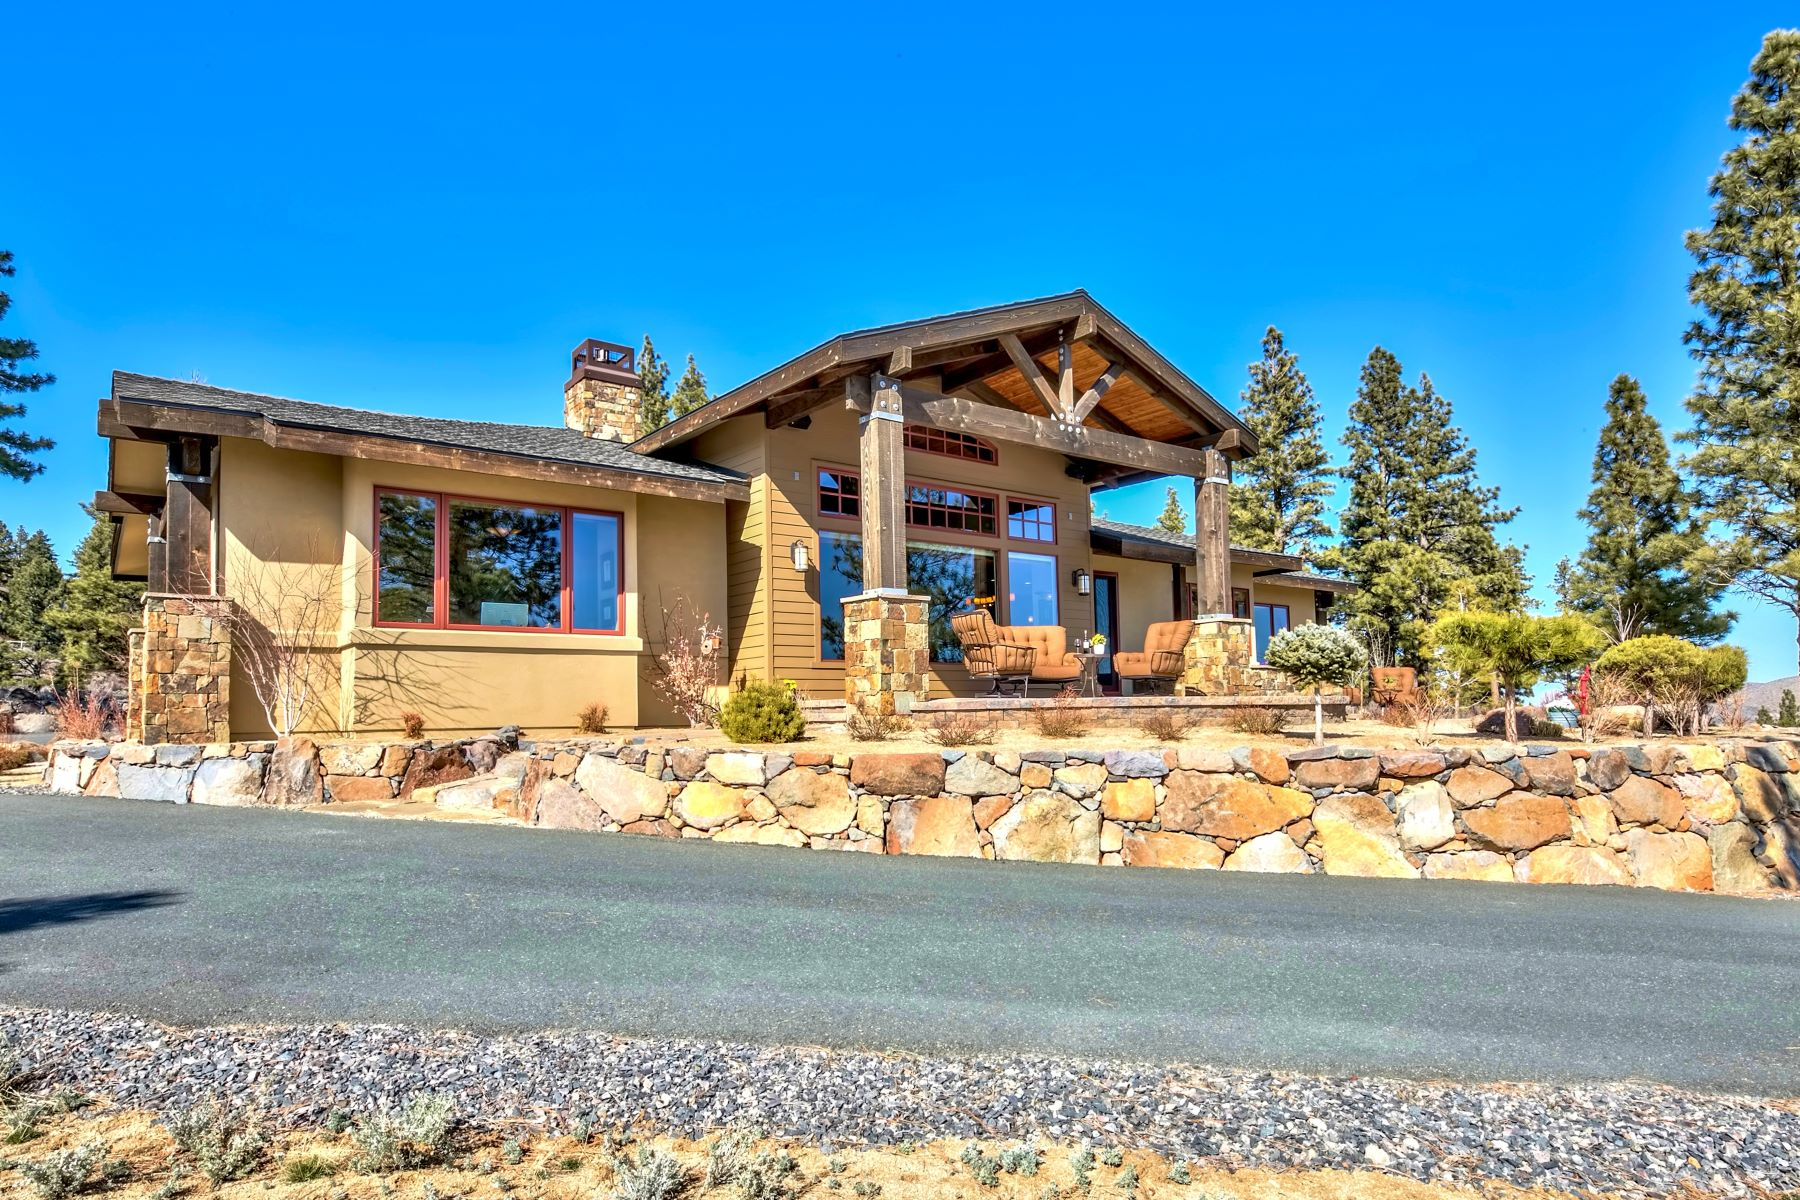 Additional photo for property listing at 645 Sand Cherry Ct, Reno 89511 645 Sand Cherry Court Reno, Nevada 89511 United States